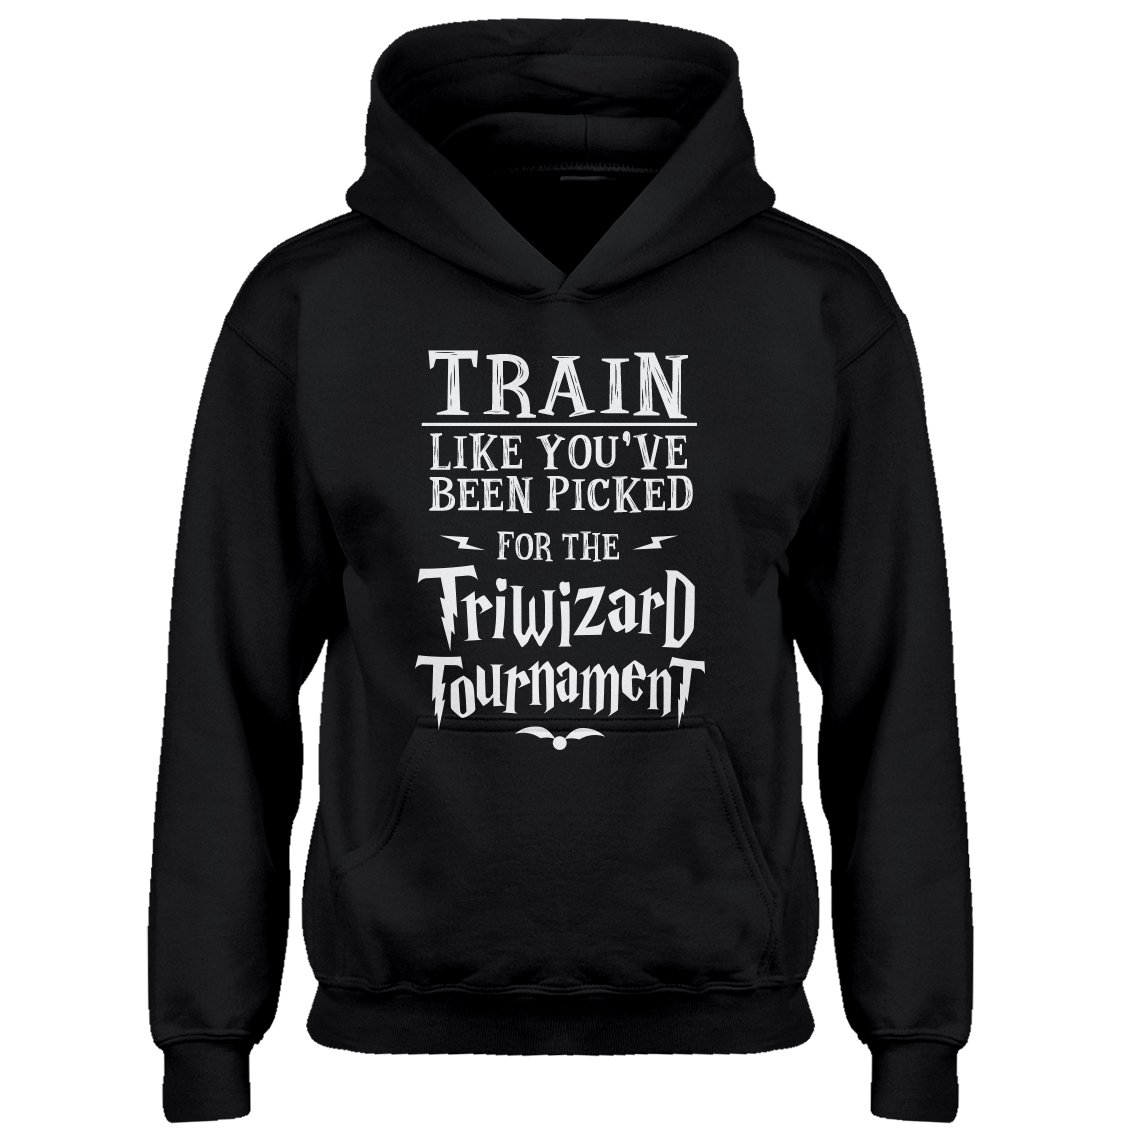 Indica Plateau Youth Train for Triwizard Tournament Kids Hoodie